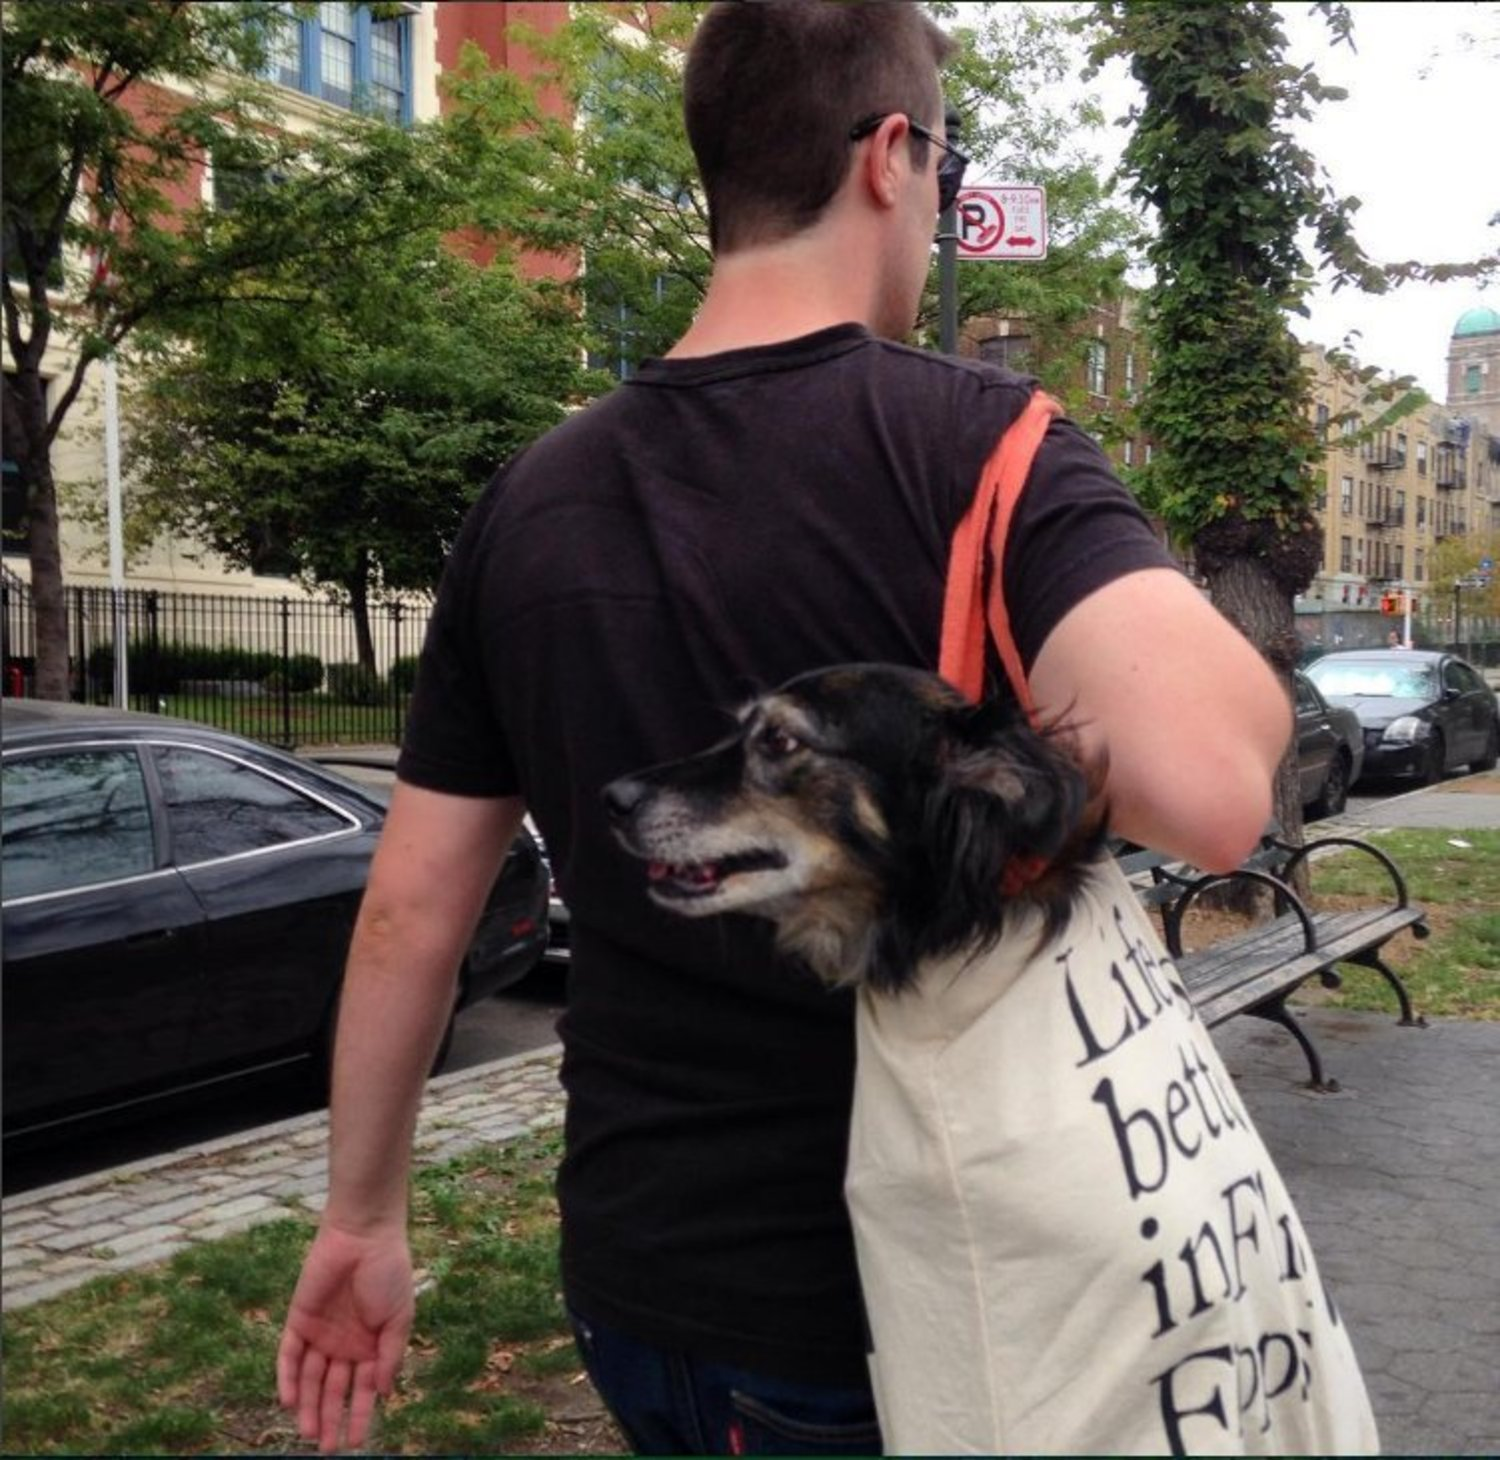 @alexromano @ttayl0r @Gothamist lol totally done this with my dog on the subway. https://t.co/sXfJEGBDDd